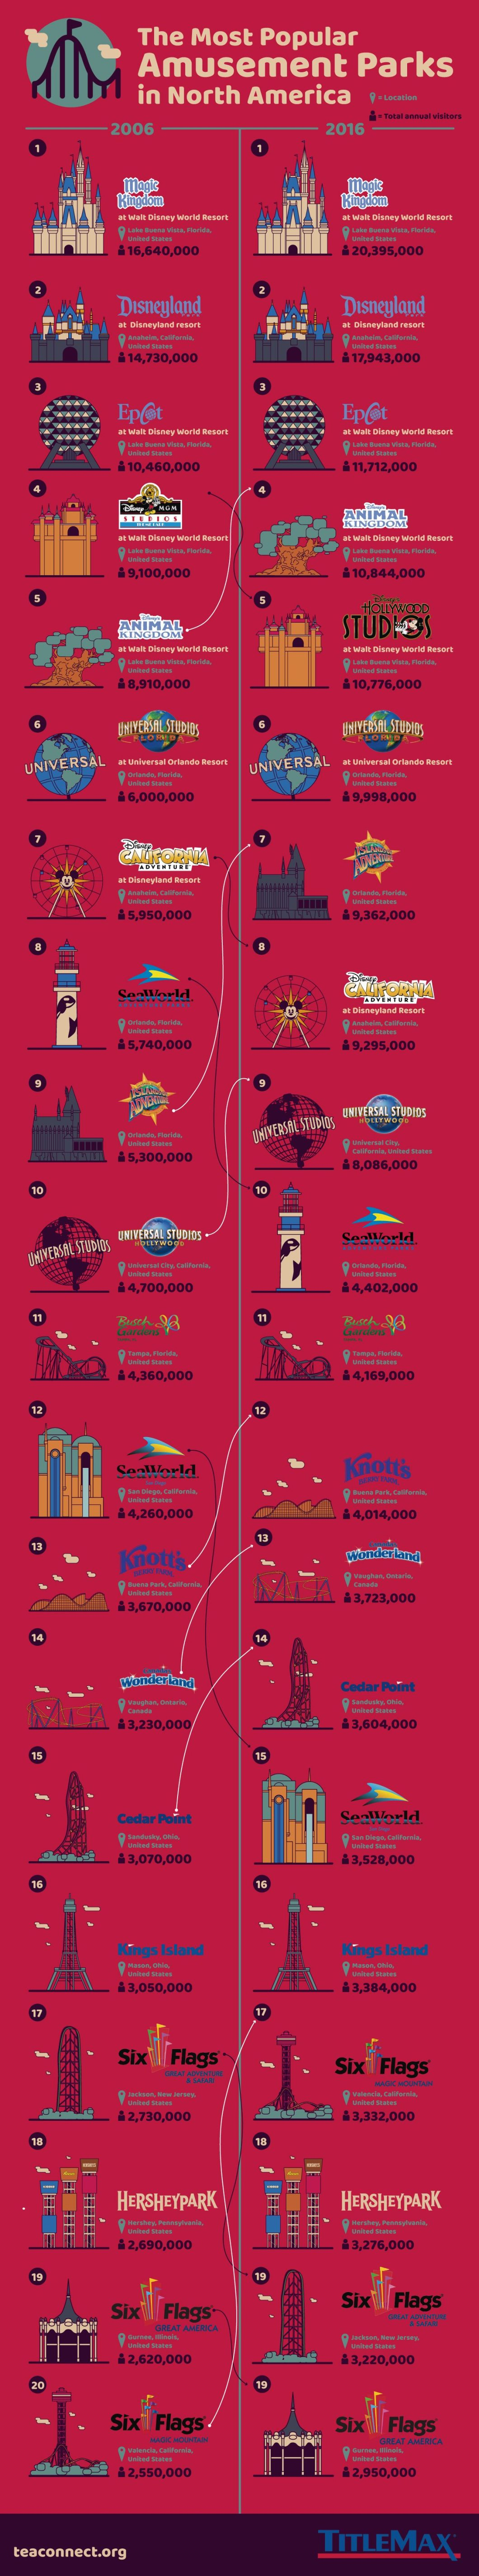 Top of the Parks! 20 Most Popular Amusement Parks in North America - Infographic